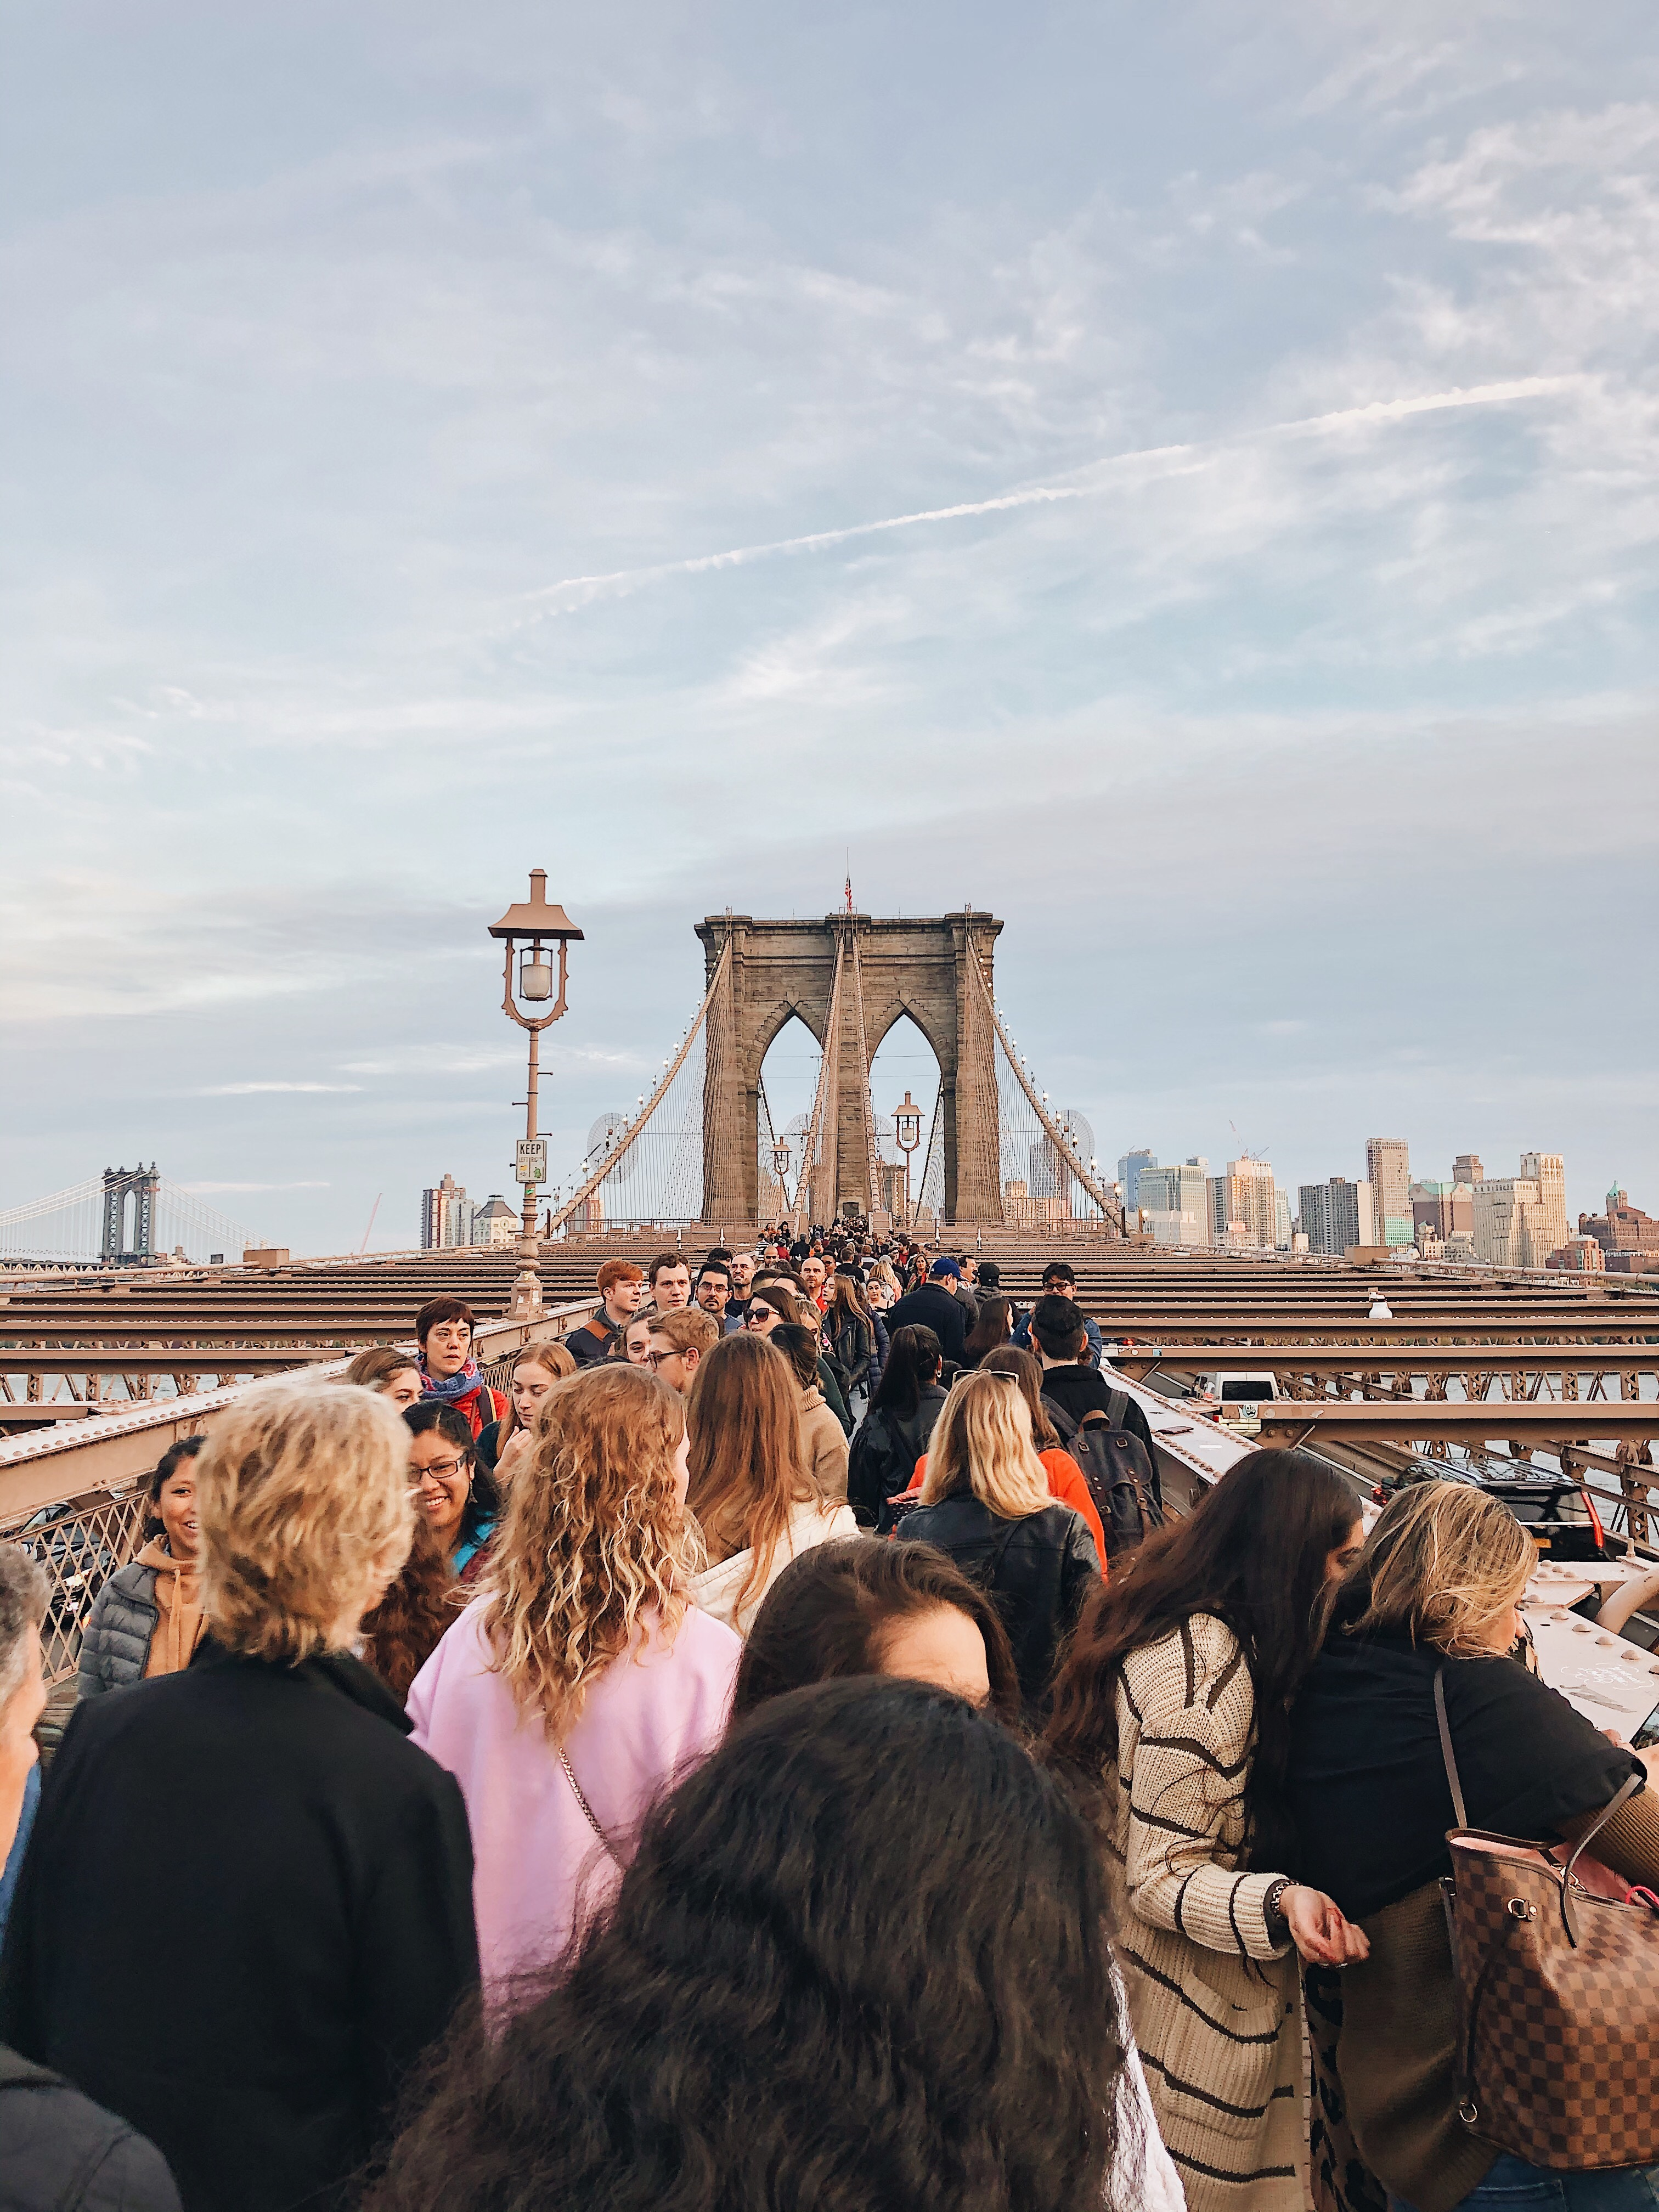 7 Things You Should Know Before Visiting New York City